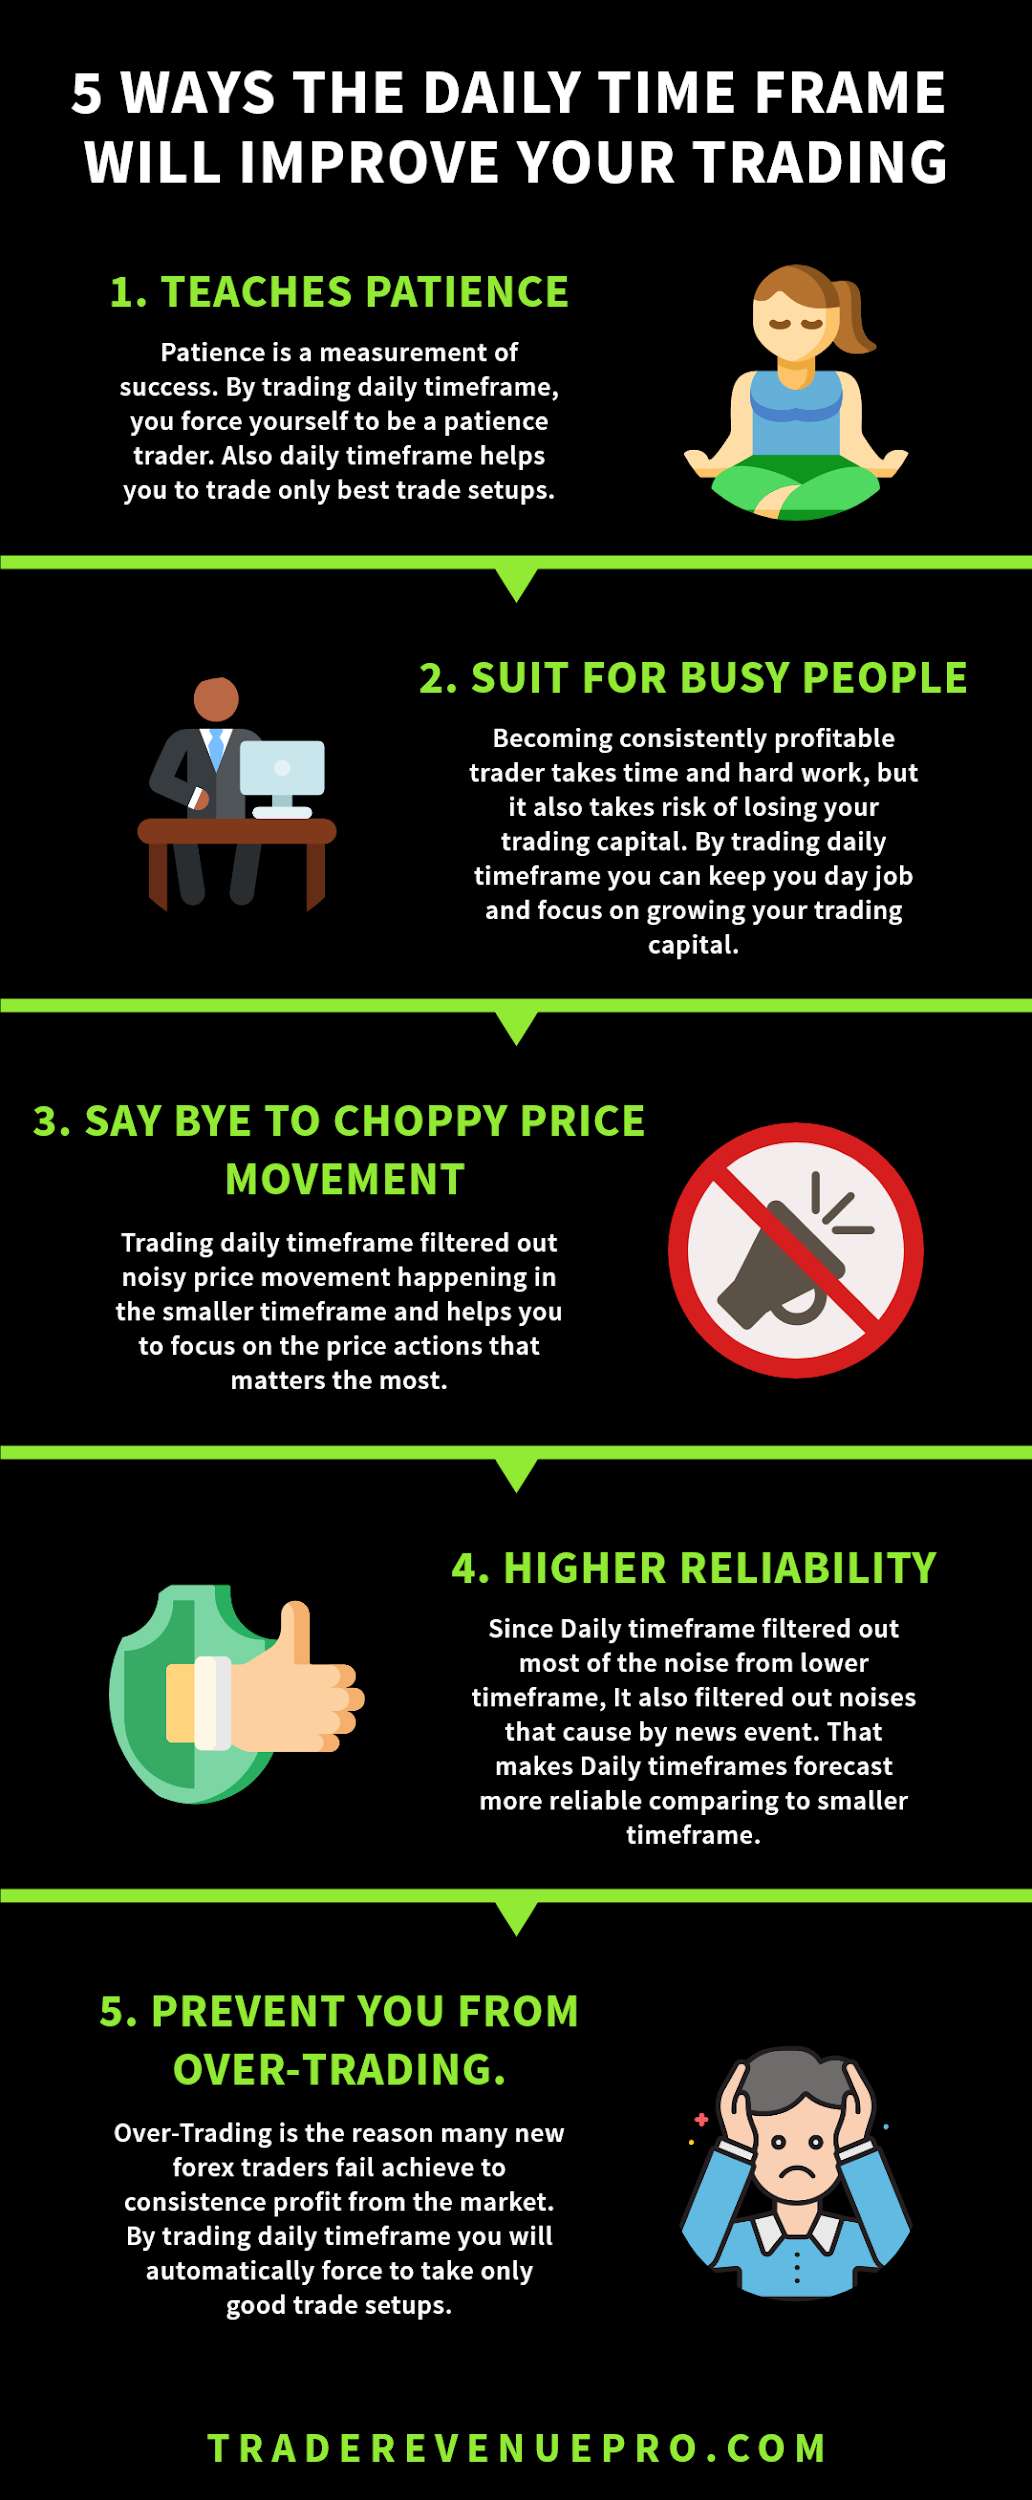 advantages of trading daily timeframe in forex